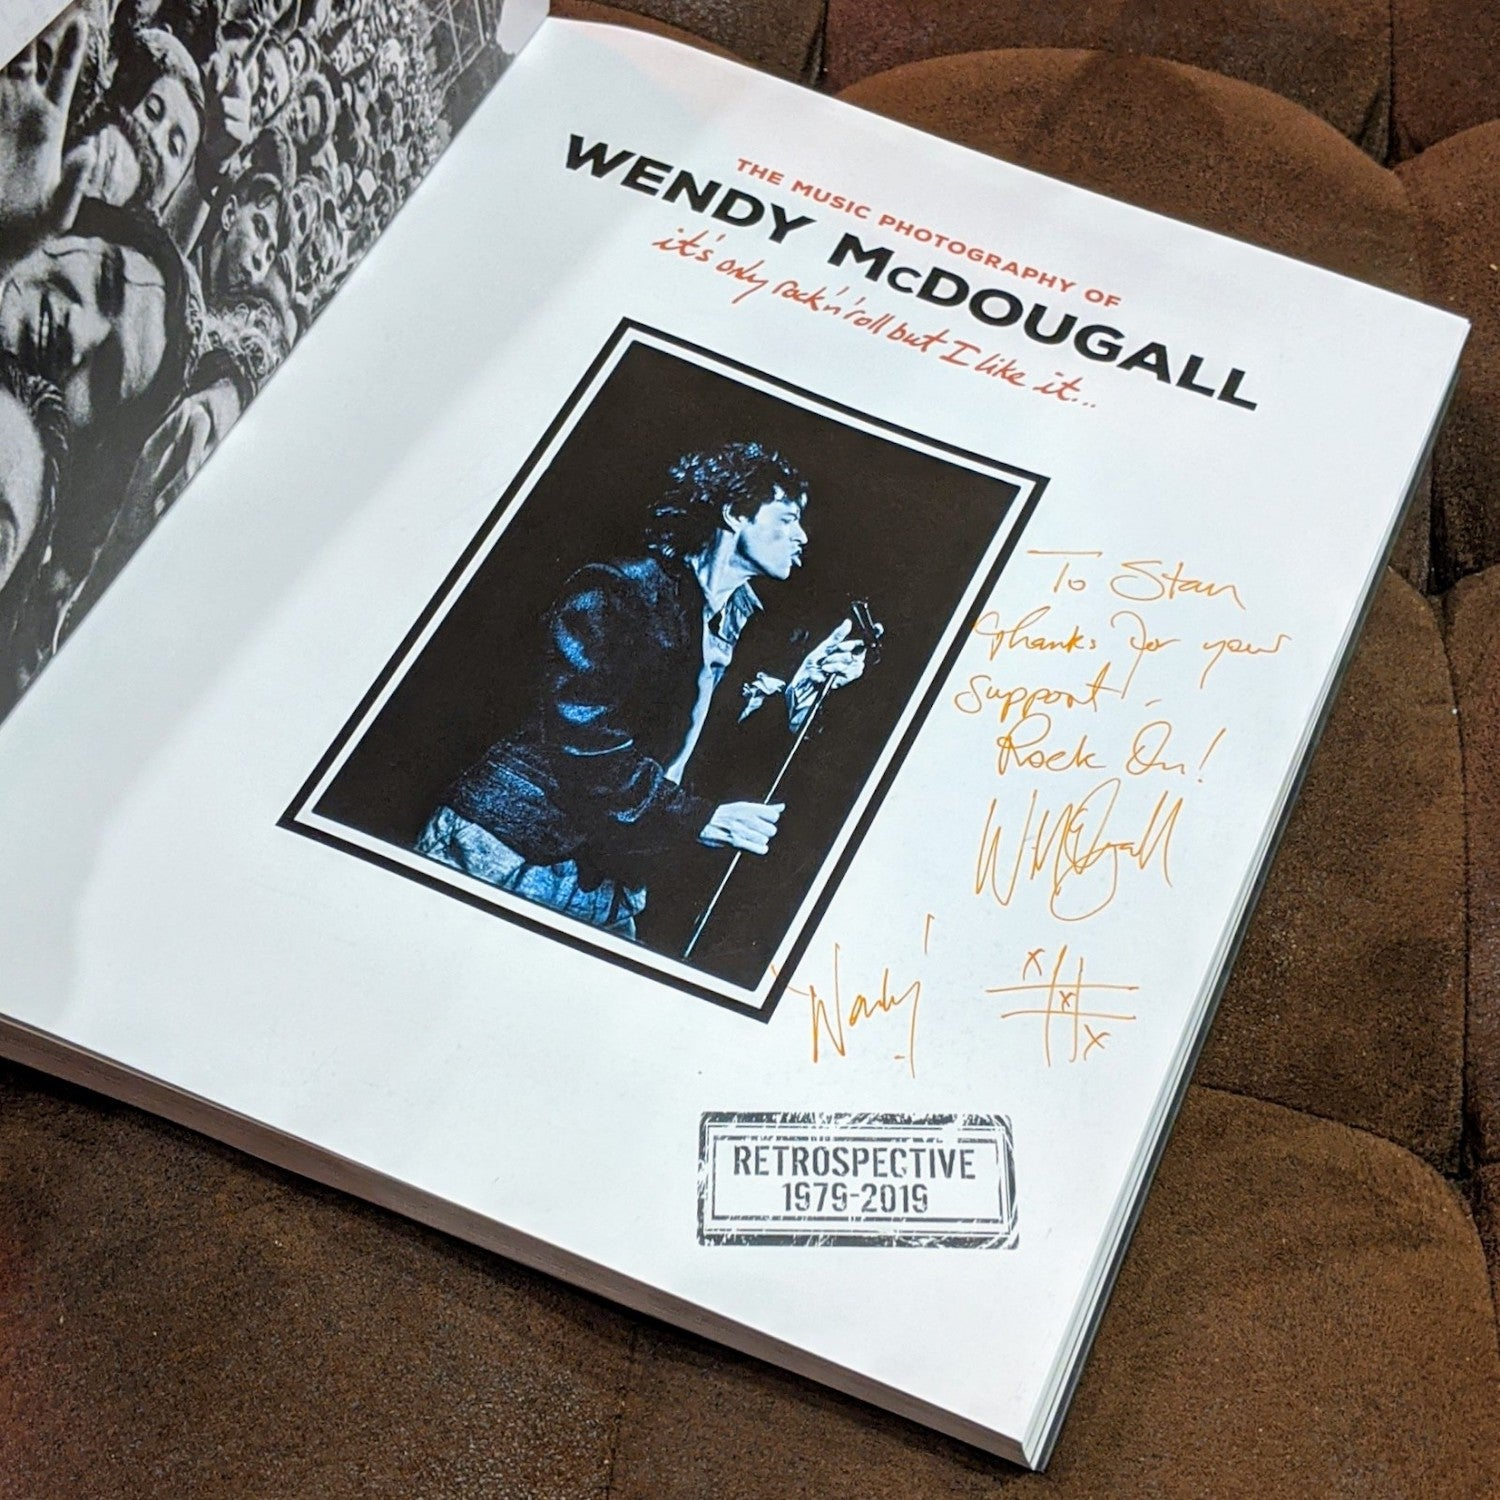 The Music Photography Of Wendy McDougall Book